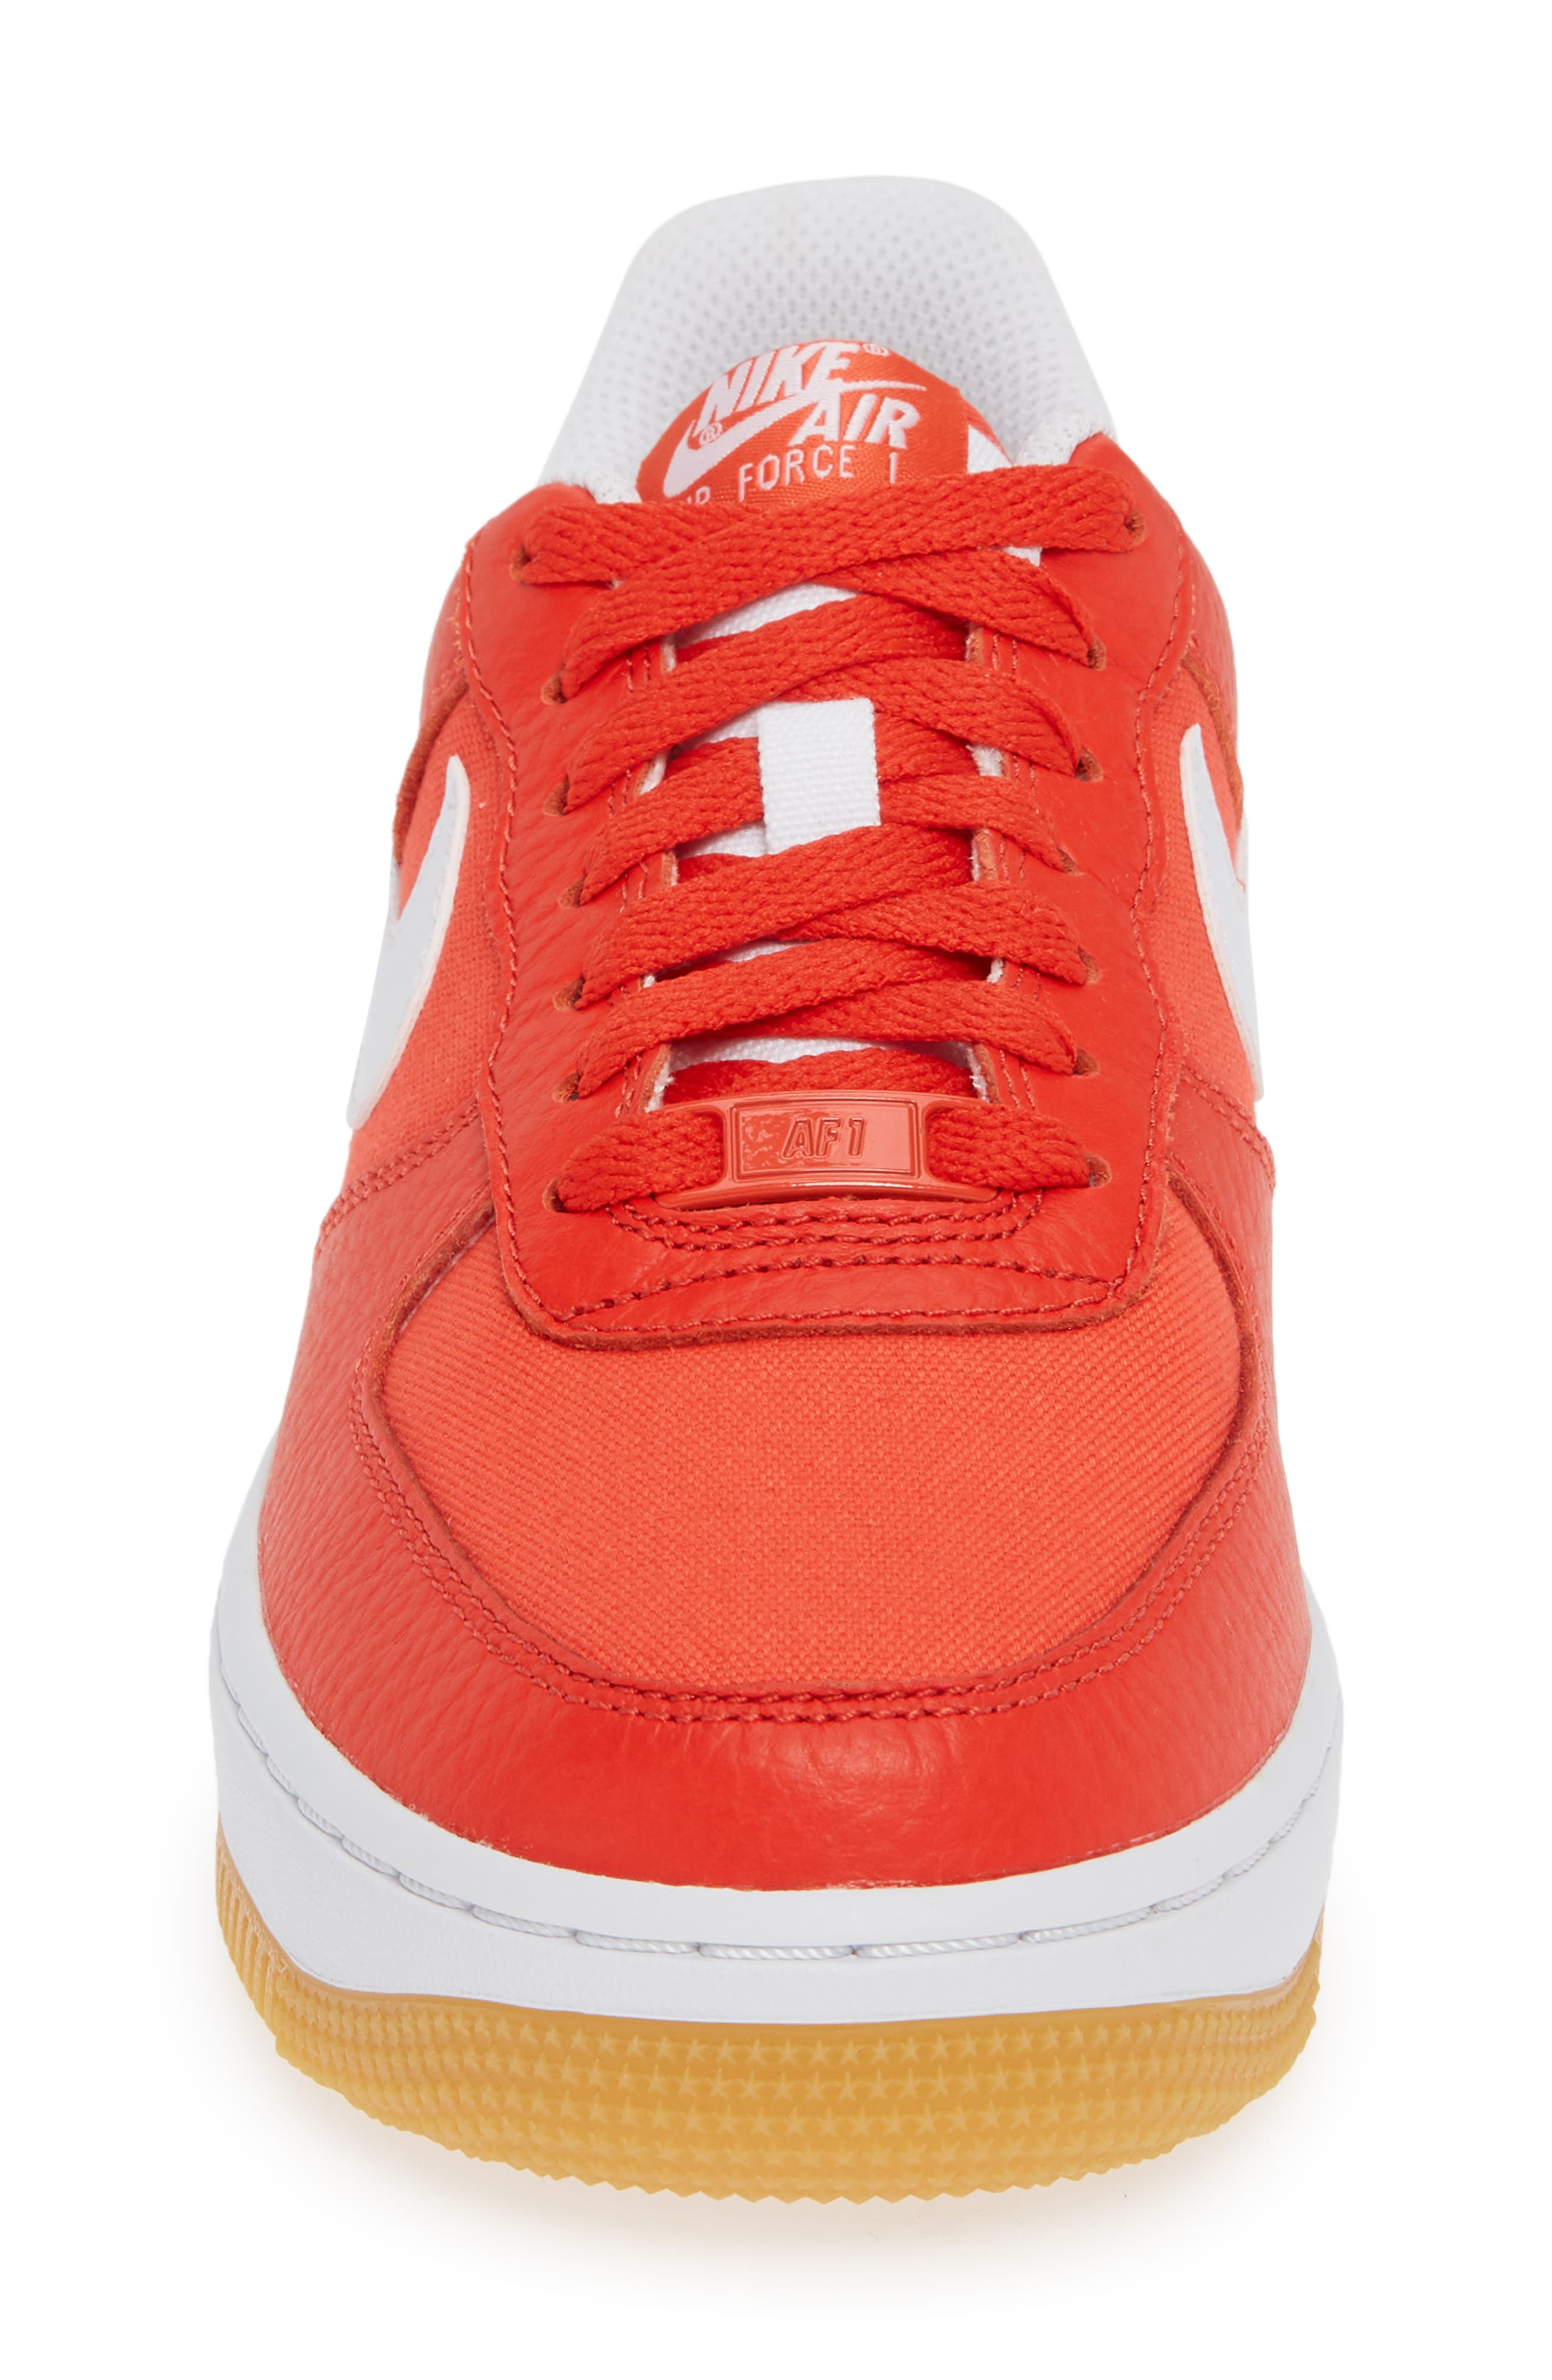 Air Force 1 '07 Premium Sneaker,                             Alternate thumbnail 4, color,                             RED/ WHITE/ LIGHT BROWN